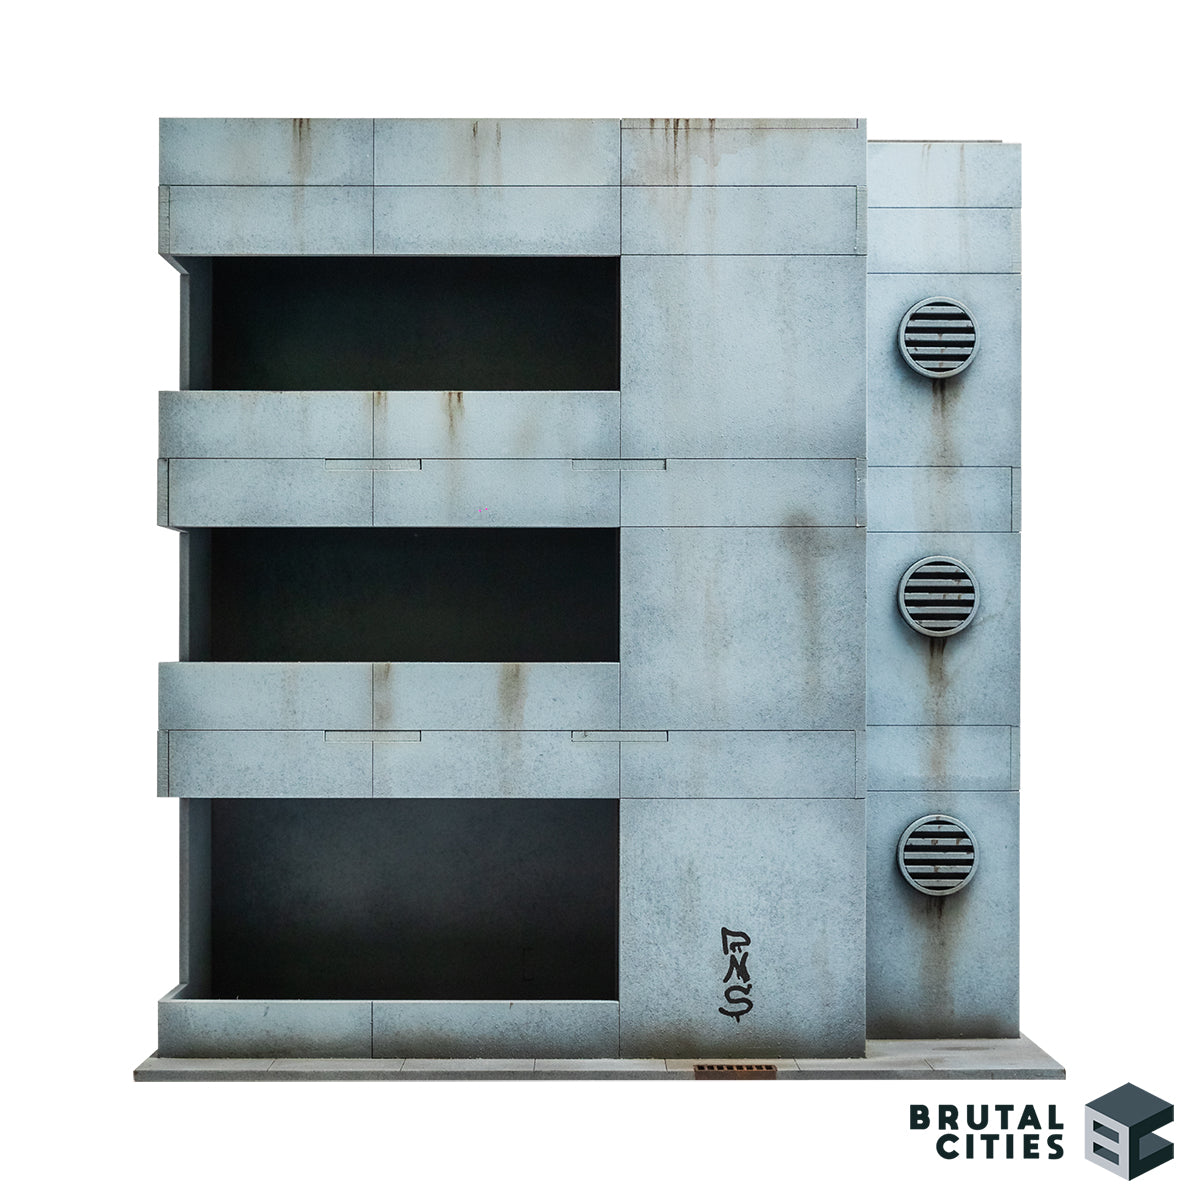 Elevation of minimalist office building for modern and sci-fi wargaming.